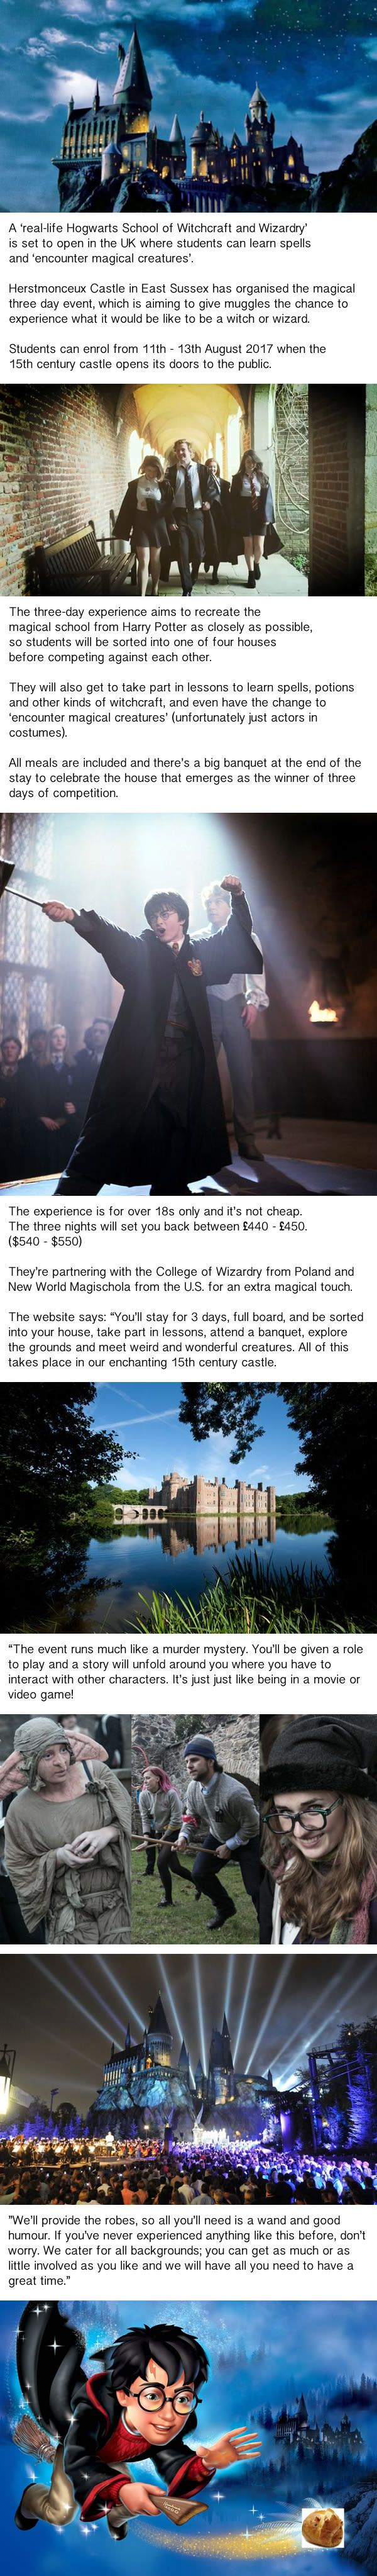 Hogwarts in Real Life! WORTH IT?!?!